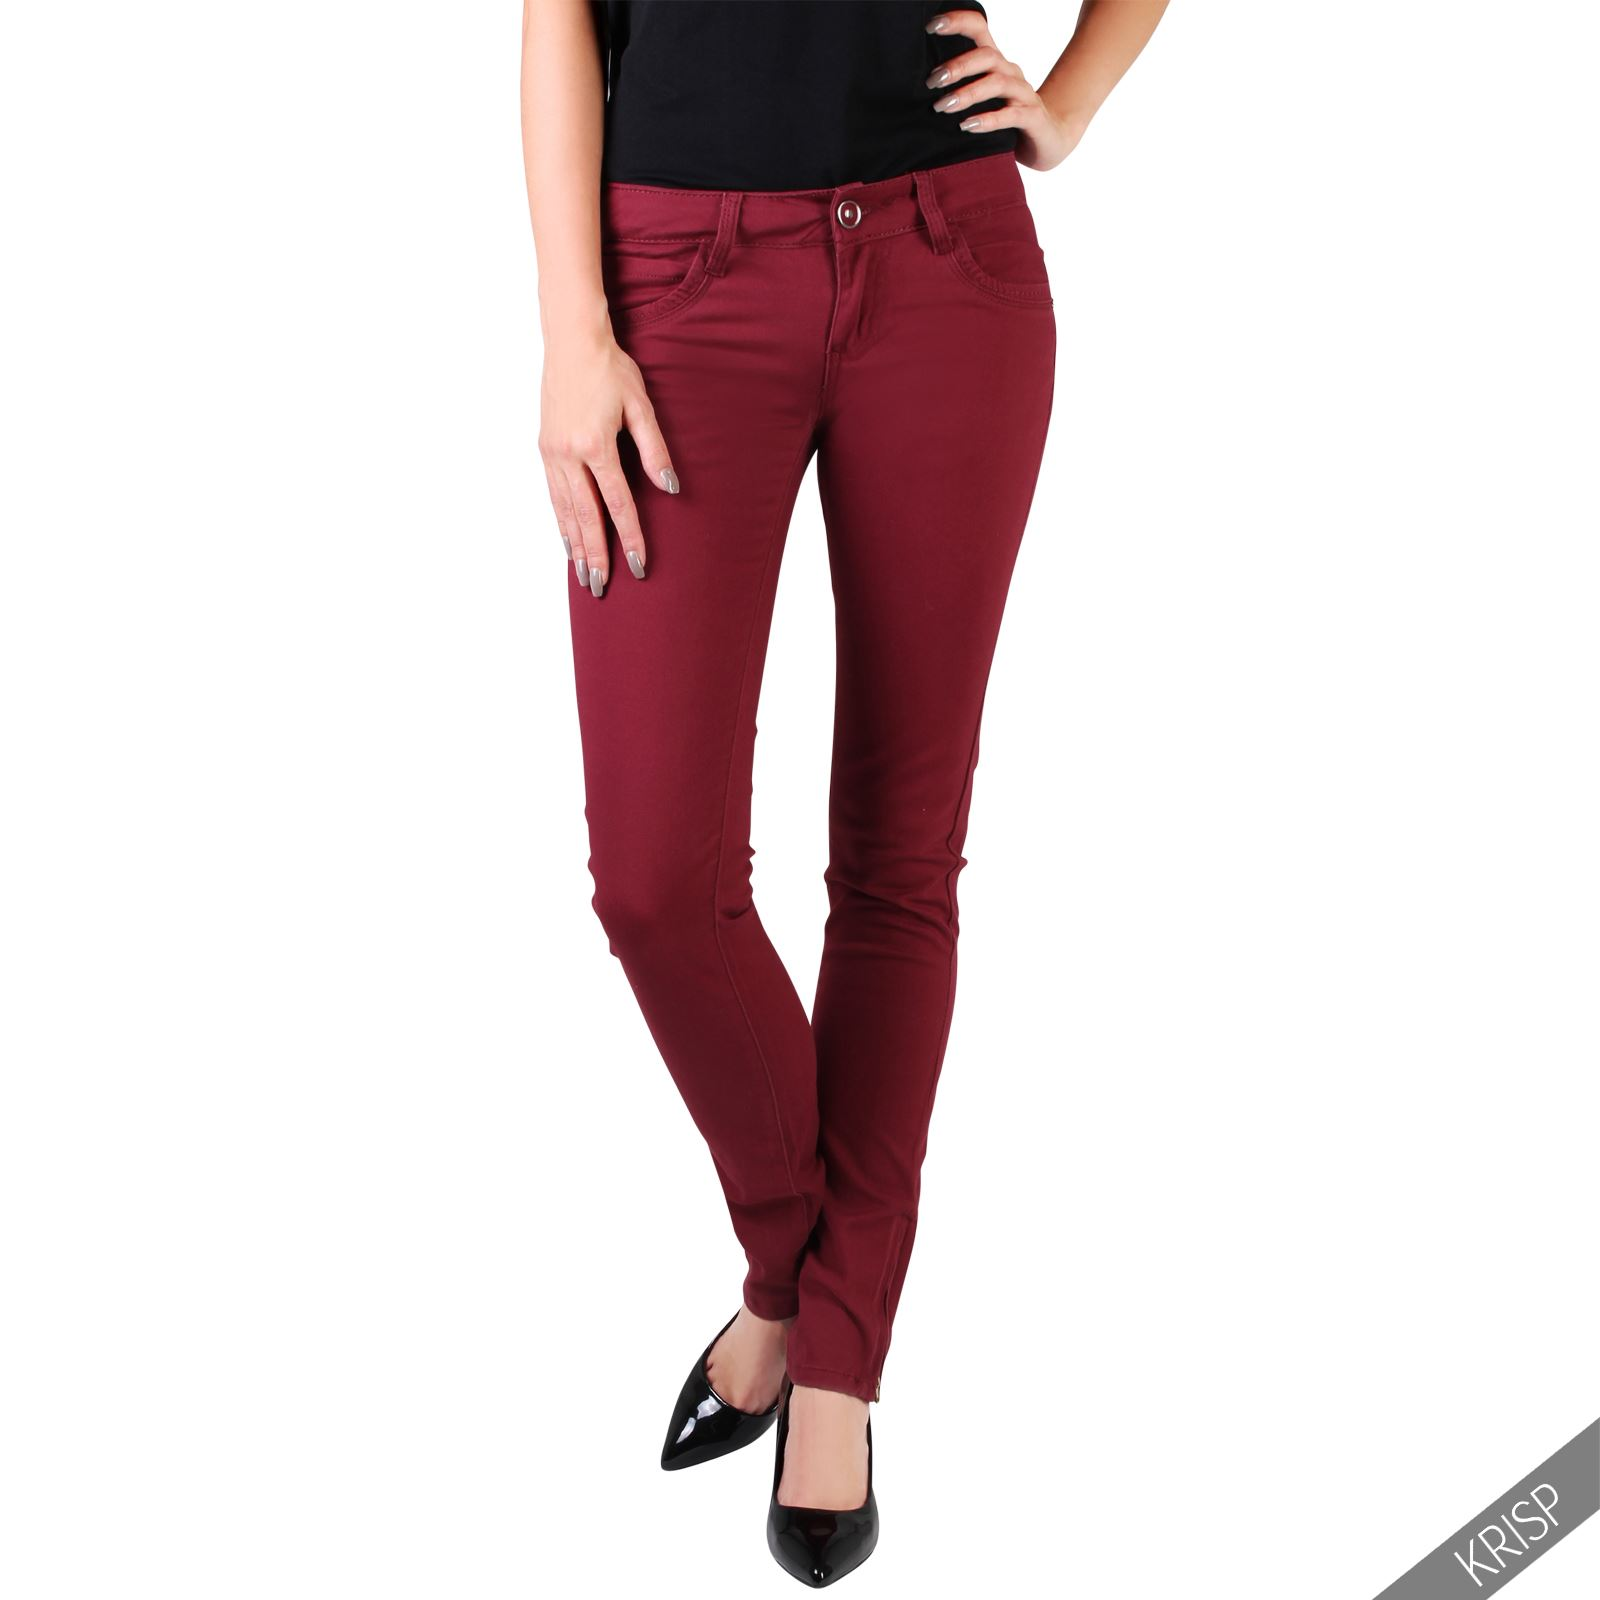 High Rise Side-Zip True Skinny Ankle Jeans in Sculpt $ $ Washwell Mid Rise Favorite Ankle Jeggings $ $ Skinny Ankle Pants $ $ Washwell Mid Rise Favorite Ankle Jeggings $ $ Curvy Skinny Ankle Pants $ $ 33% off. $ Gap Pants with Ankle Zipperss.